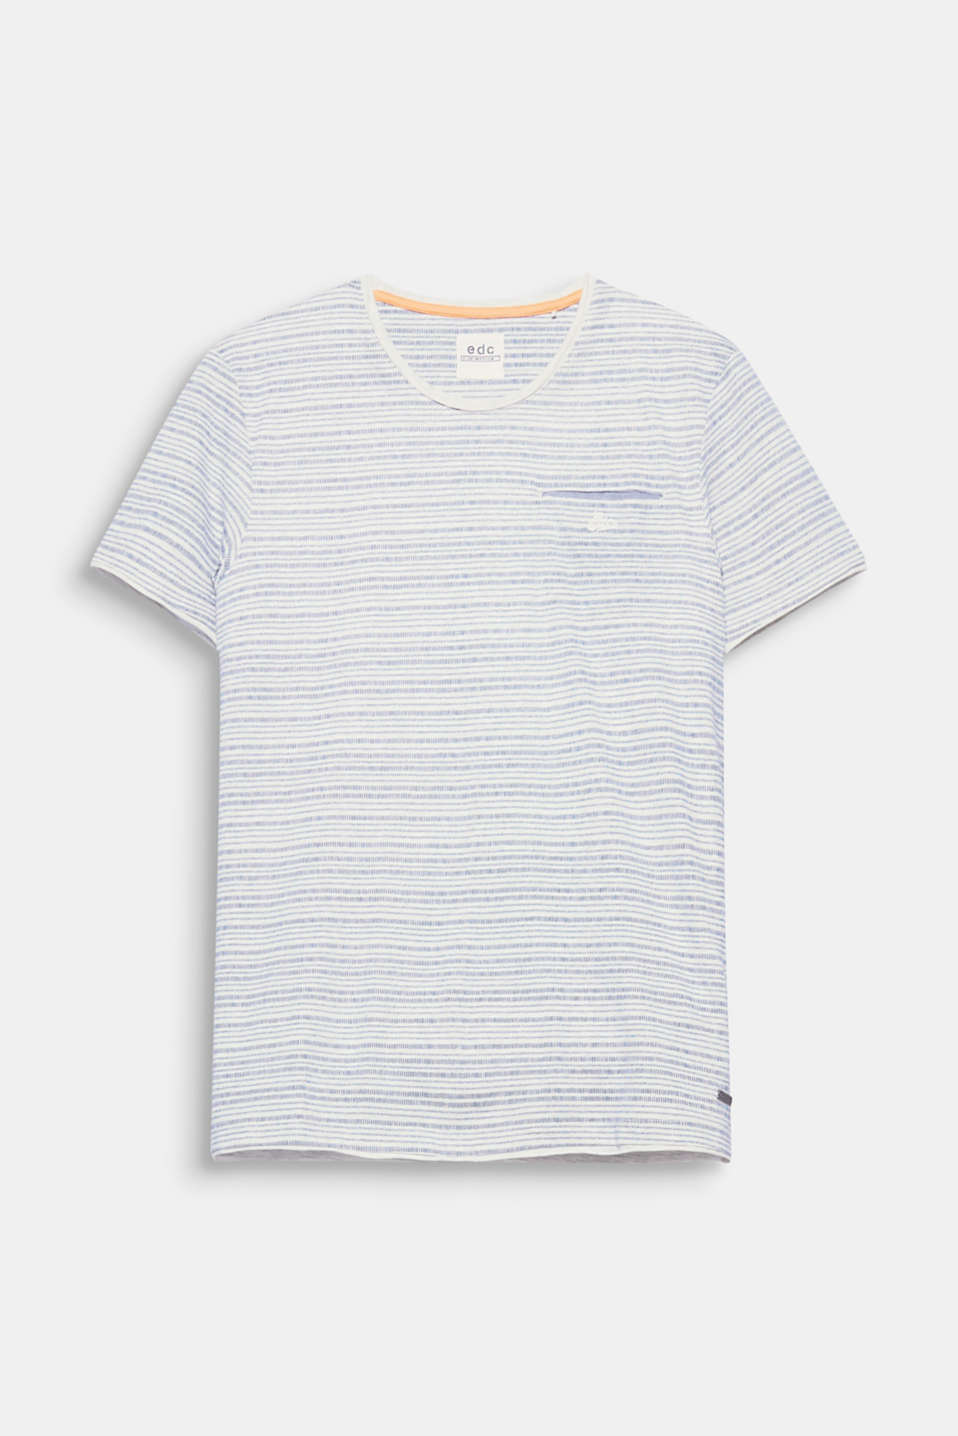 This T-shirt with a patch breast pocket has a super-casual summer style thanks to the laid-back striped print and the comfy jersey fabric.